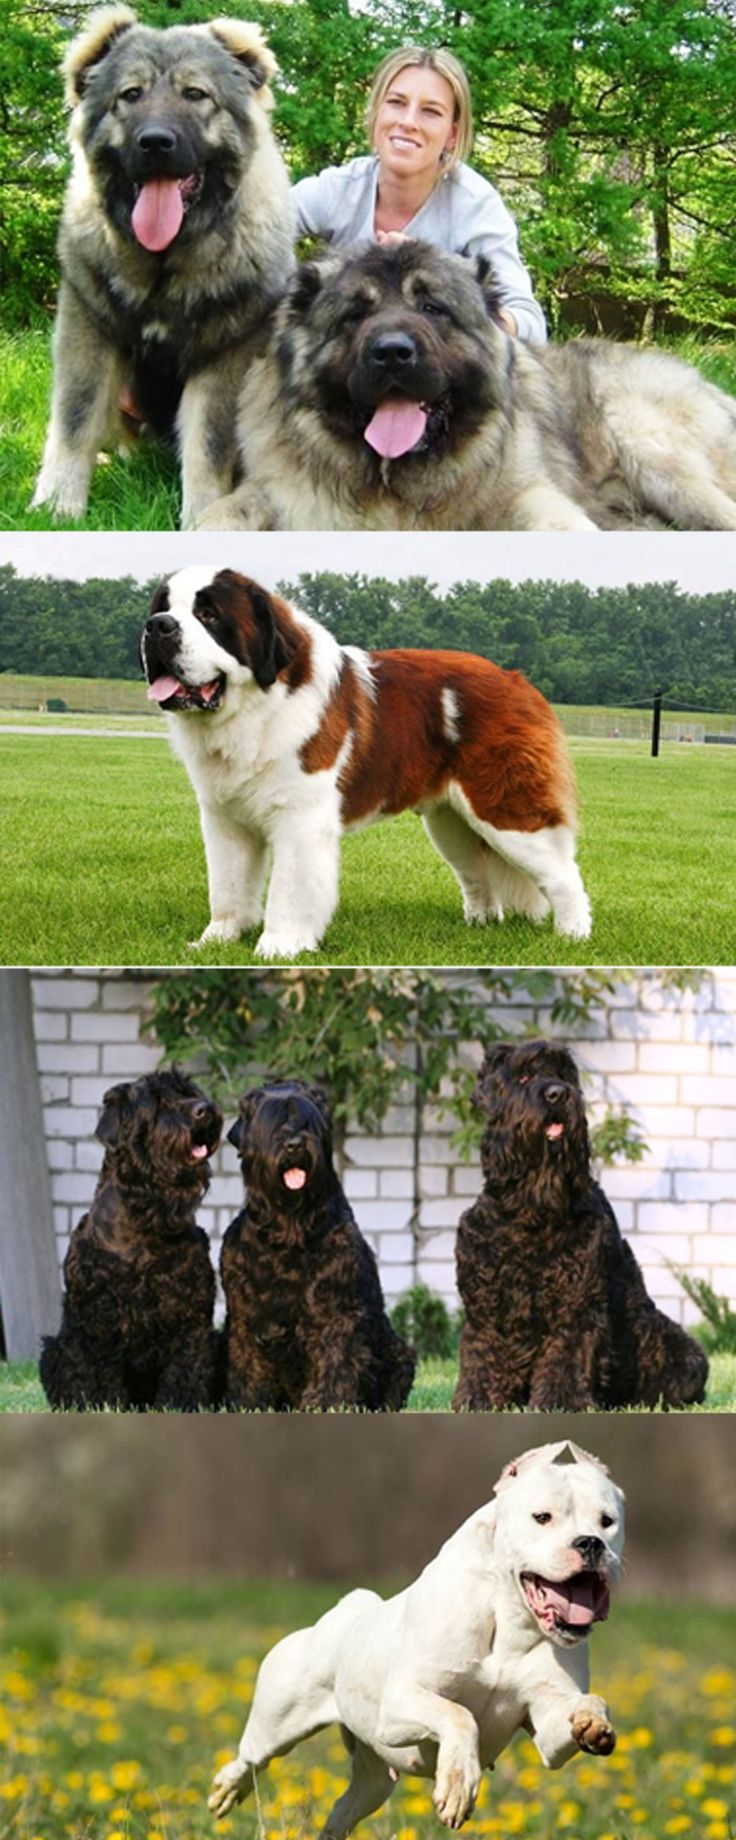 25 Of The World's Largest Dog Breeds You'd Wish You Own